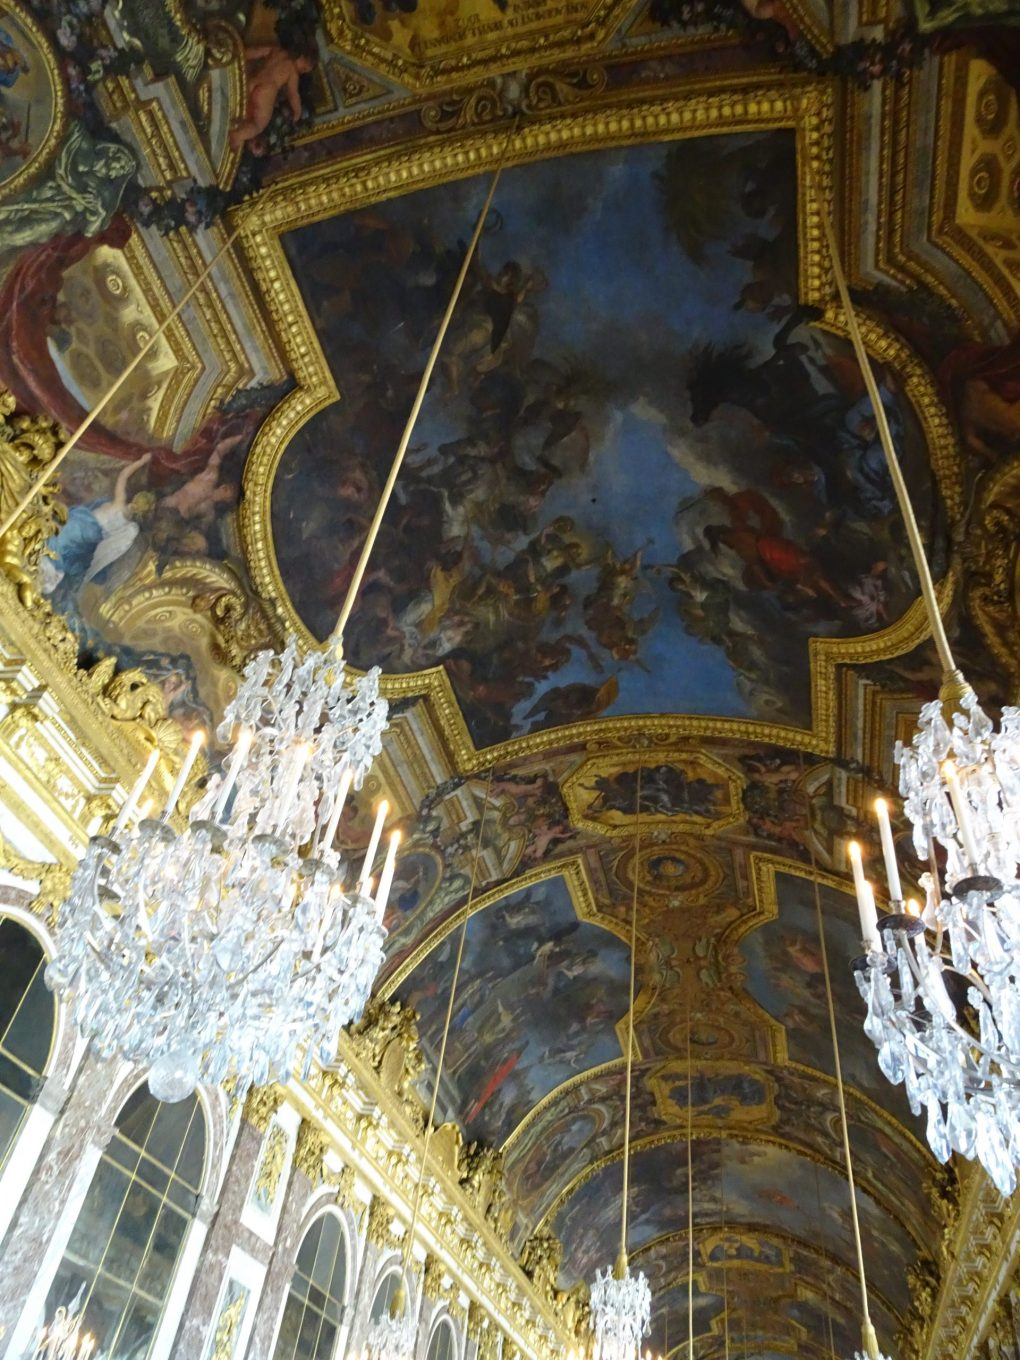 Ceiling paintings at Palace of Versailles, France